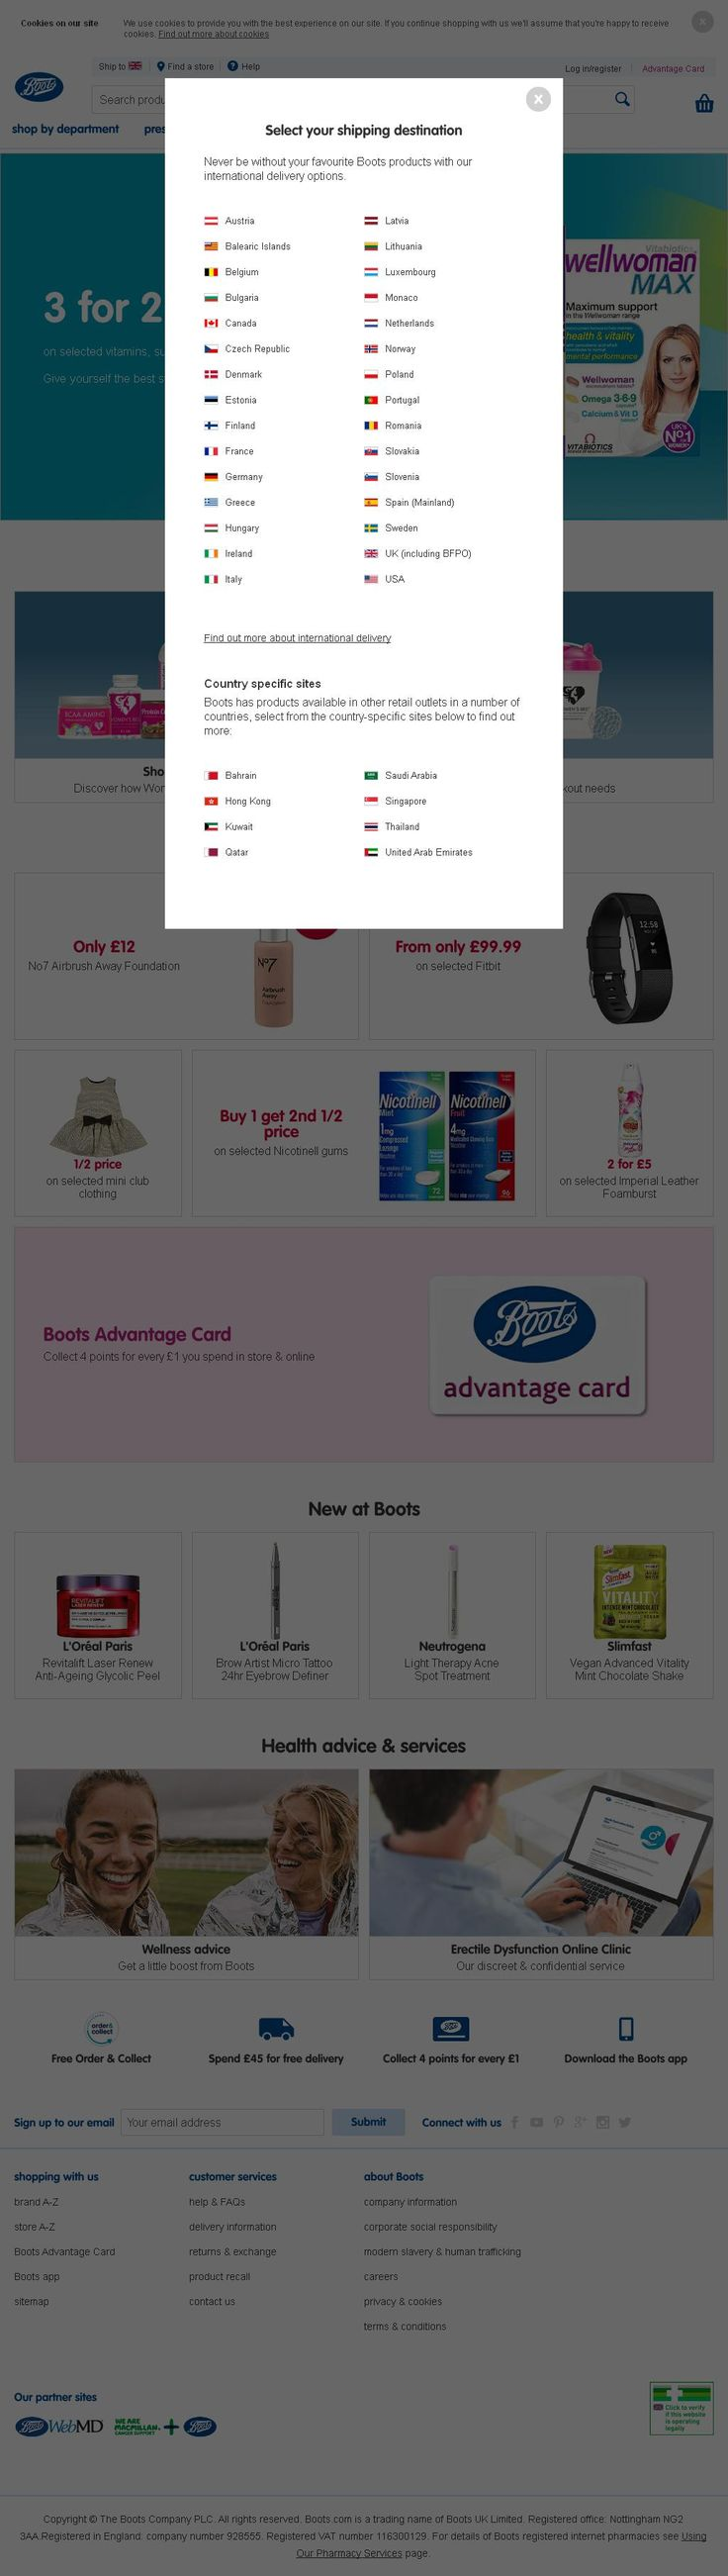 Boots Healthcare (International) Chemists D6 Thane Road   Nottingham Nottinghamshire NG90 6BH | To get more infomration about Boots Healthcare (International), Location Map, Phone numbers, Email, Website please visit http://www.HaiUK.co.uk